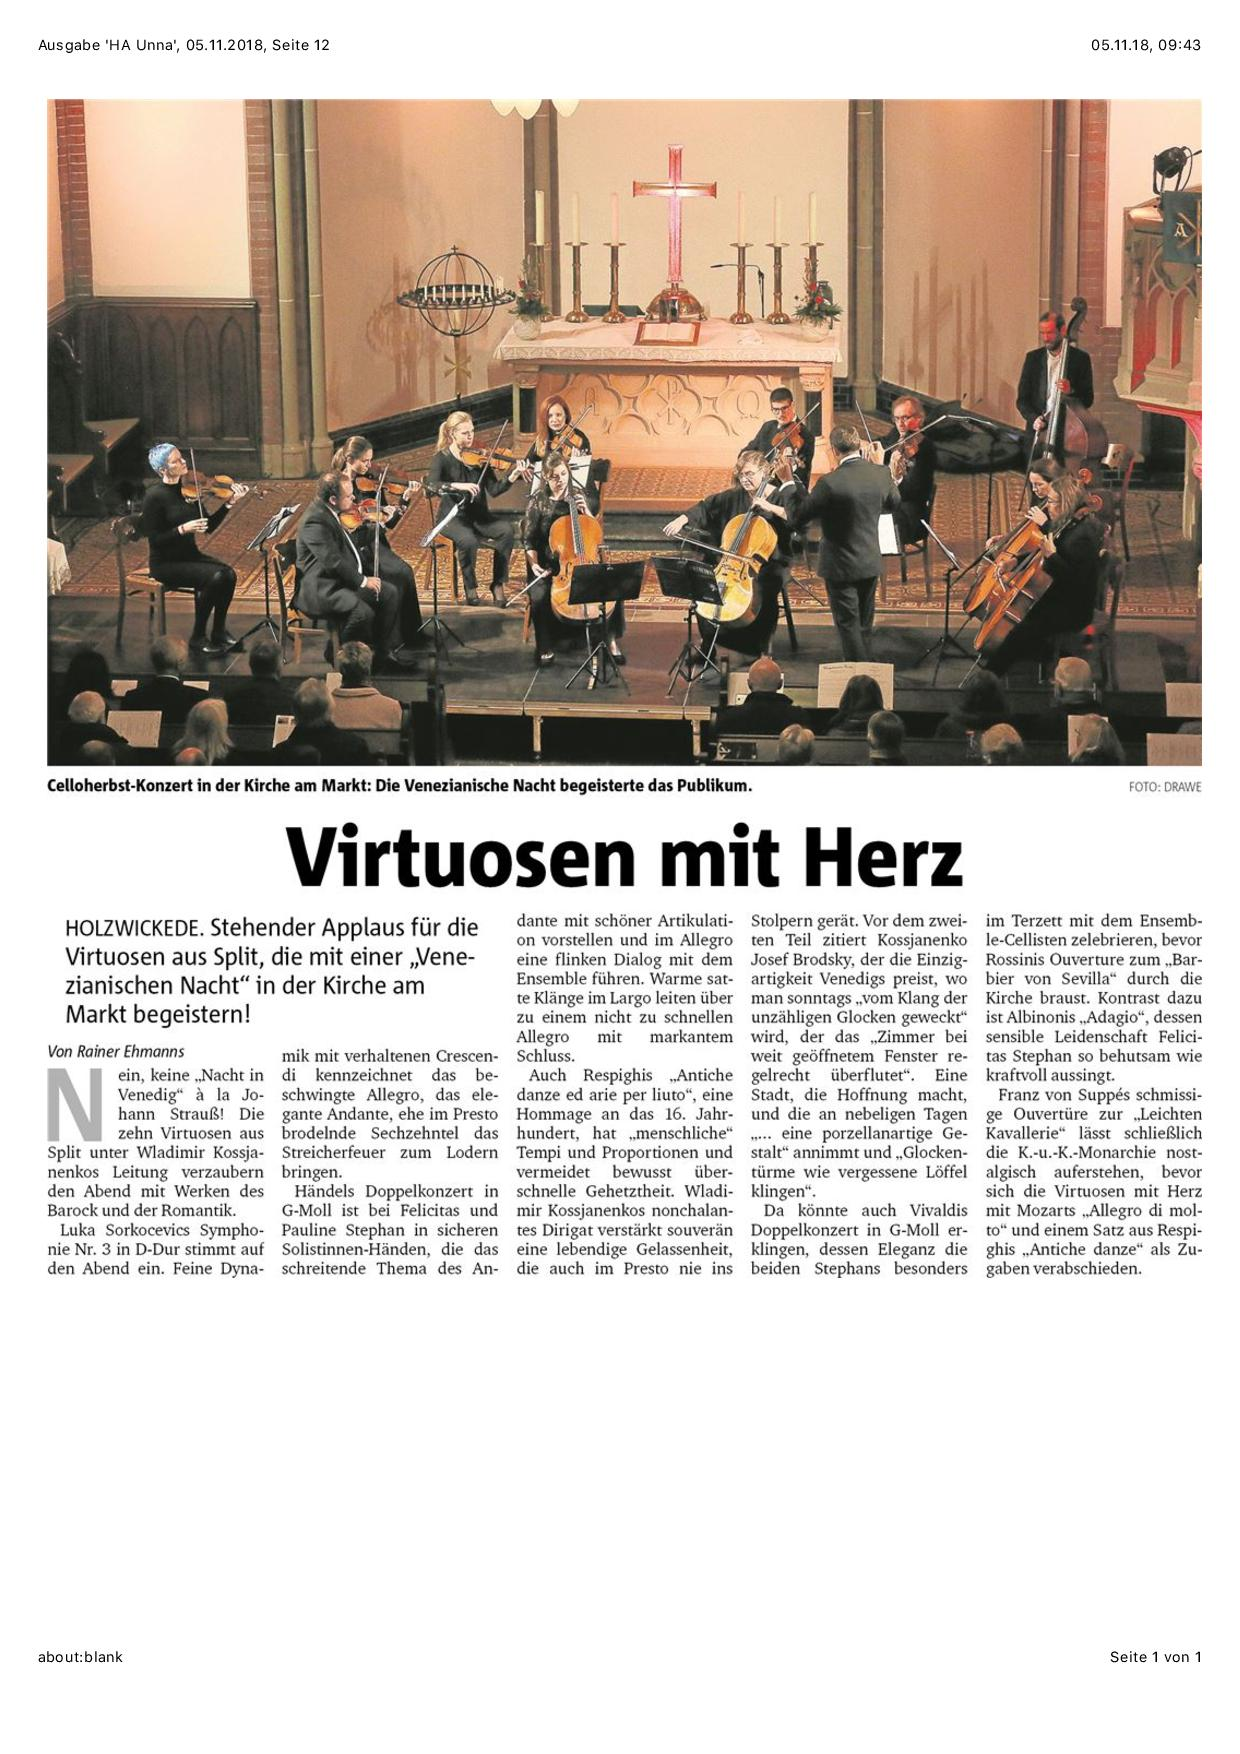 VIRTUOSEN MIT HERZ Rezension Rainer Ehmanns